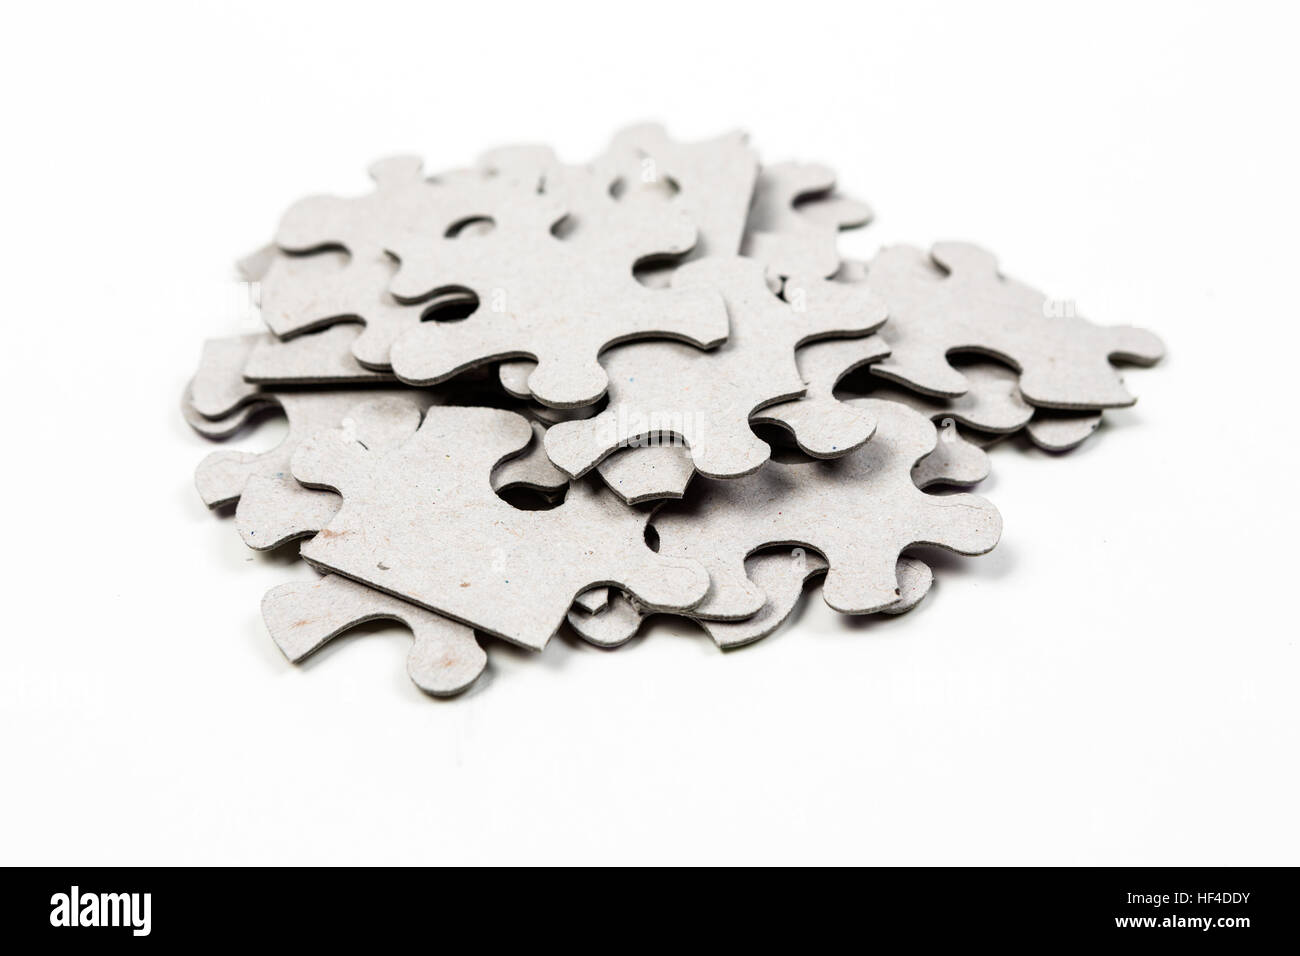 Pile Of Puzzle Pieces Isolated On White Background